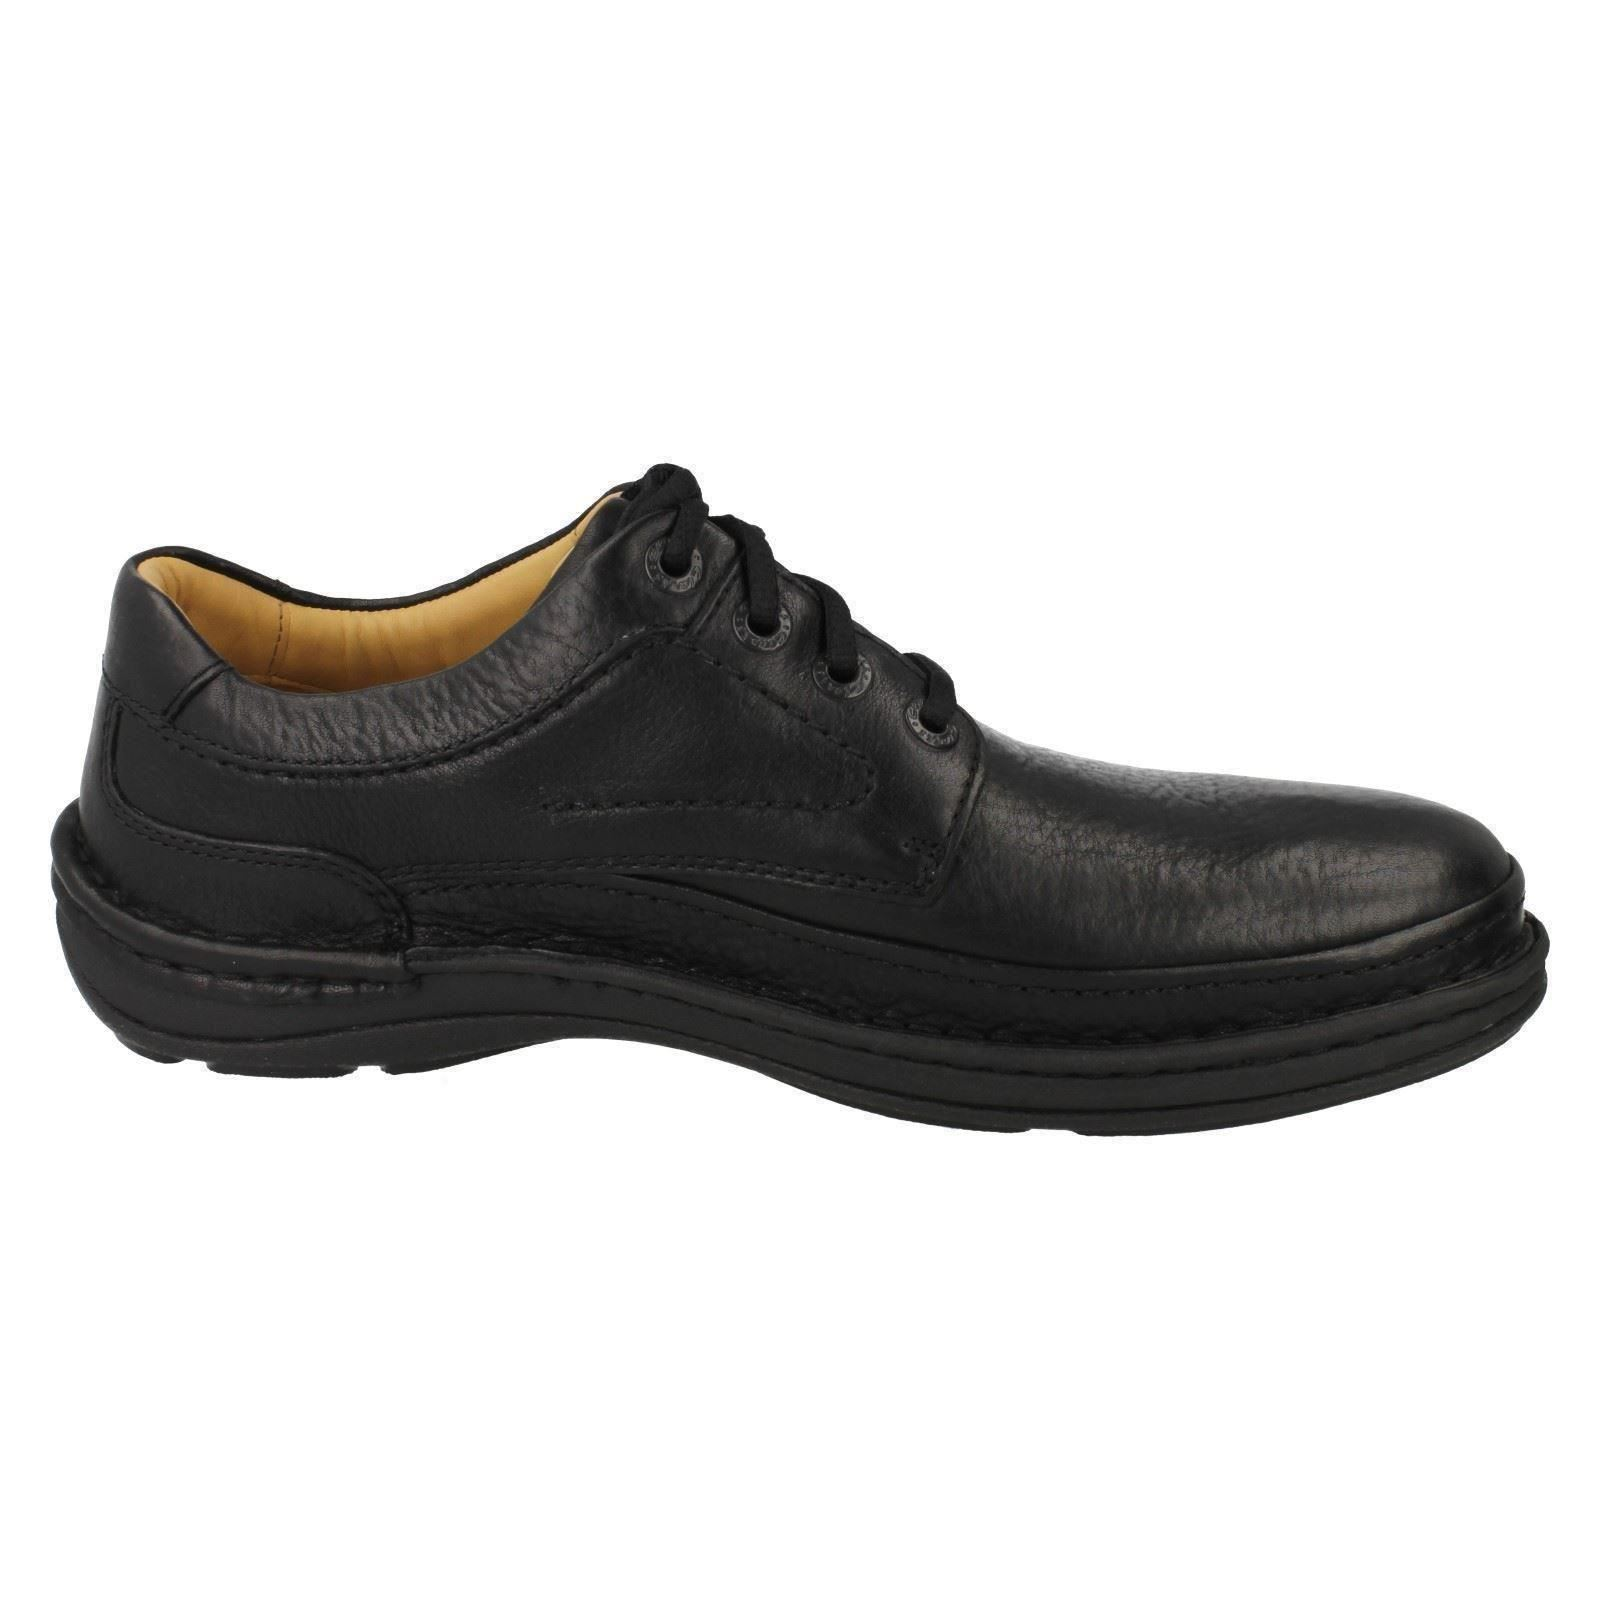 Men's Style Clarks Shoes The  Style Men's - Nature Three 97ccb7